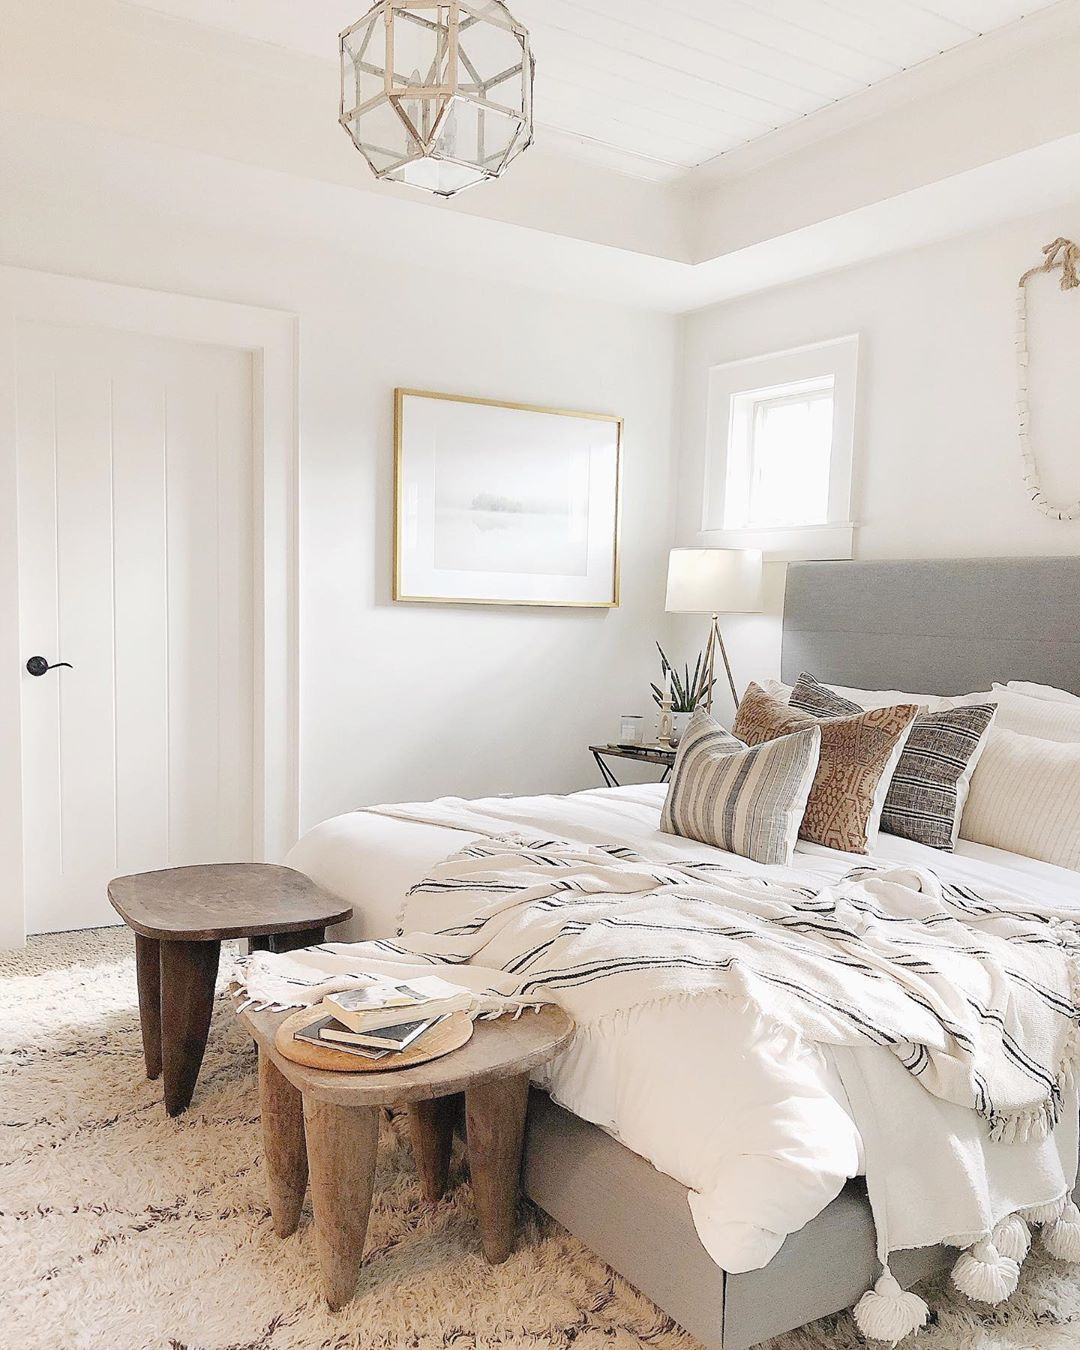 Accented Neutral Color Scheme Bedroom: Cloth&Main Gray Cloth Headboard, White Bedding, Neutral